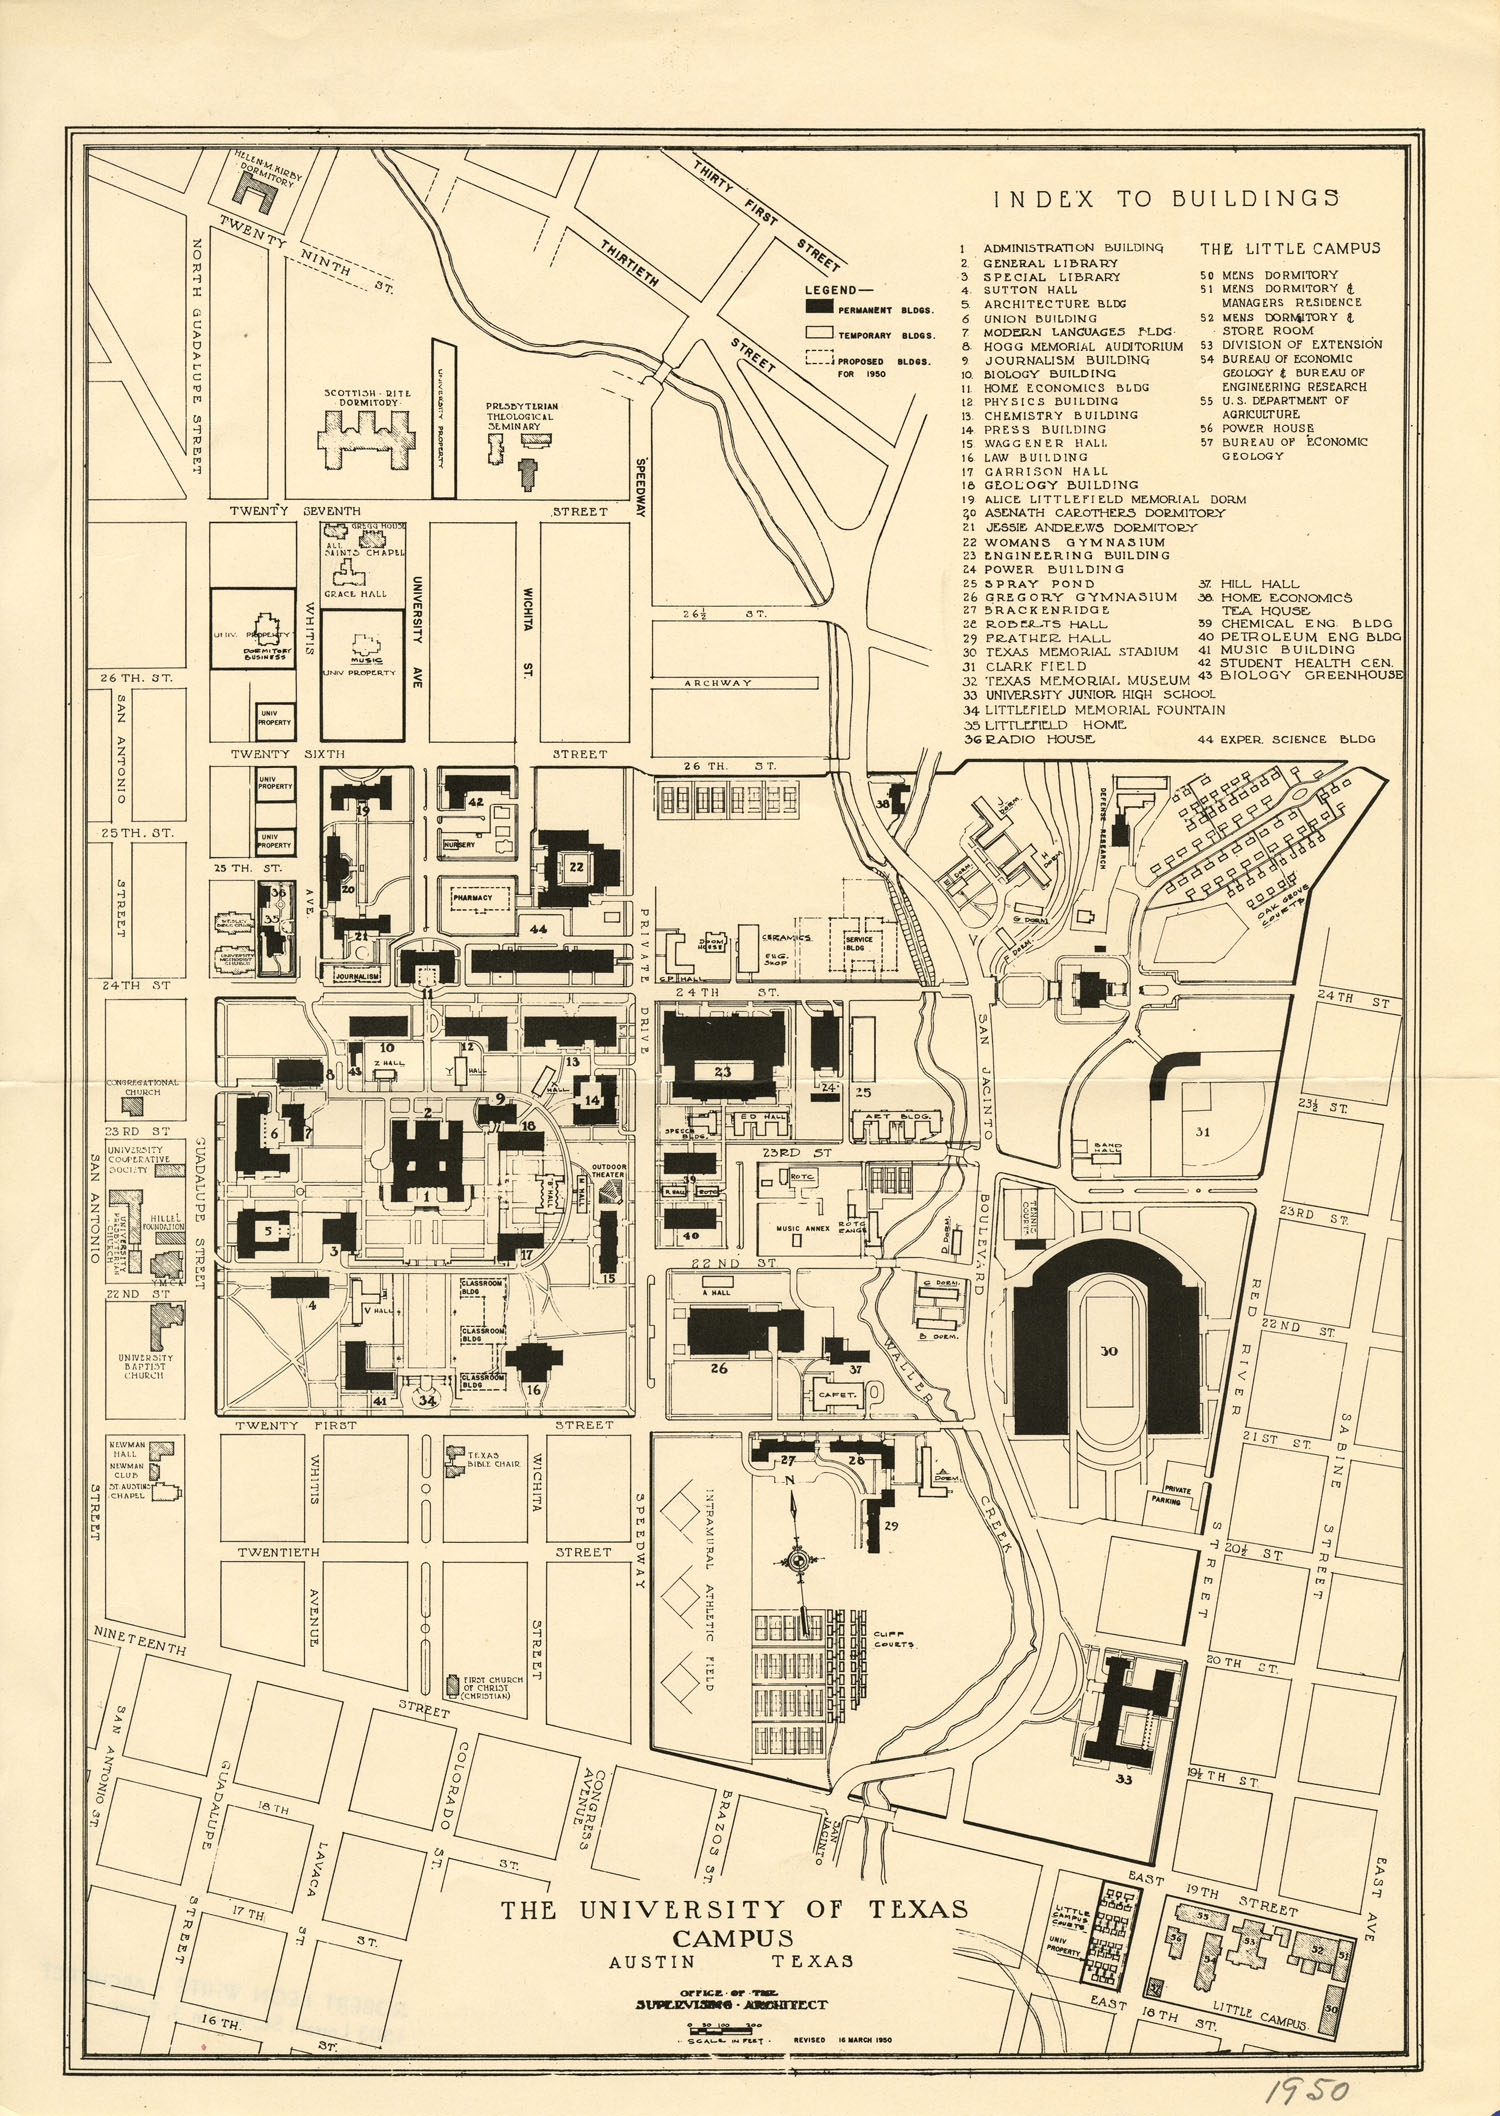 Historical Campus Maps University of Texas at Austin - Perry ... on u texas commencement, ut austin building map, u of arizona campus map, u albany campus map, u pitt campus map, university of texas map, u texas computer science, u new haven campus map, u of idaho campus map, u texas map network drive,